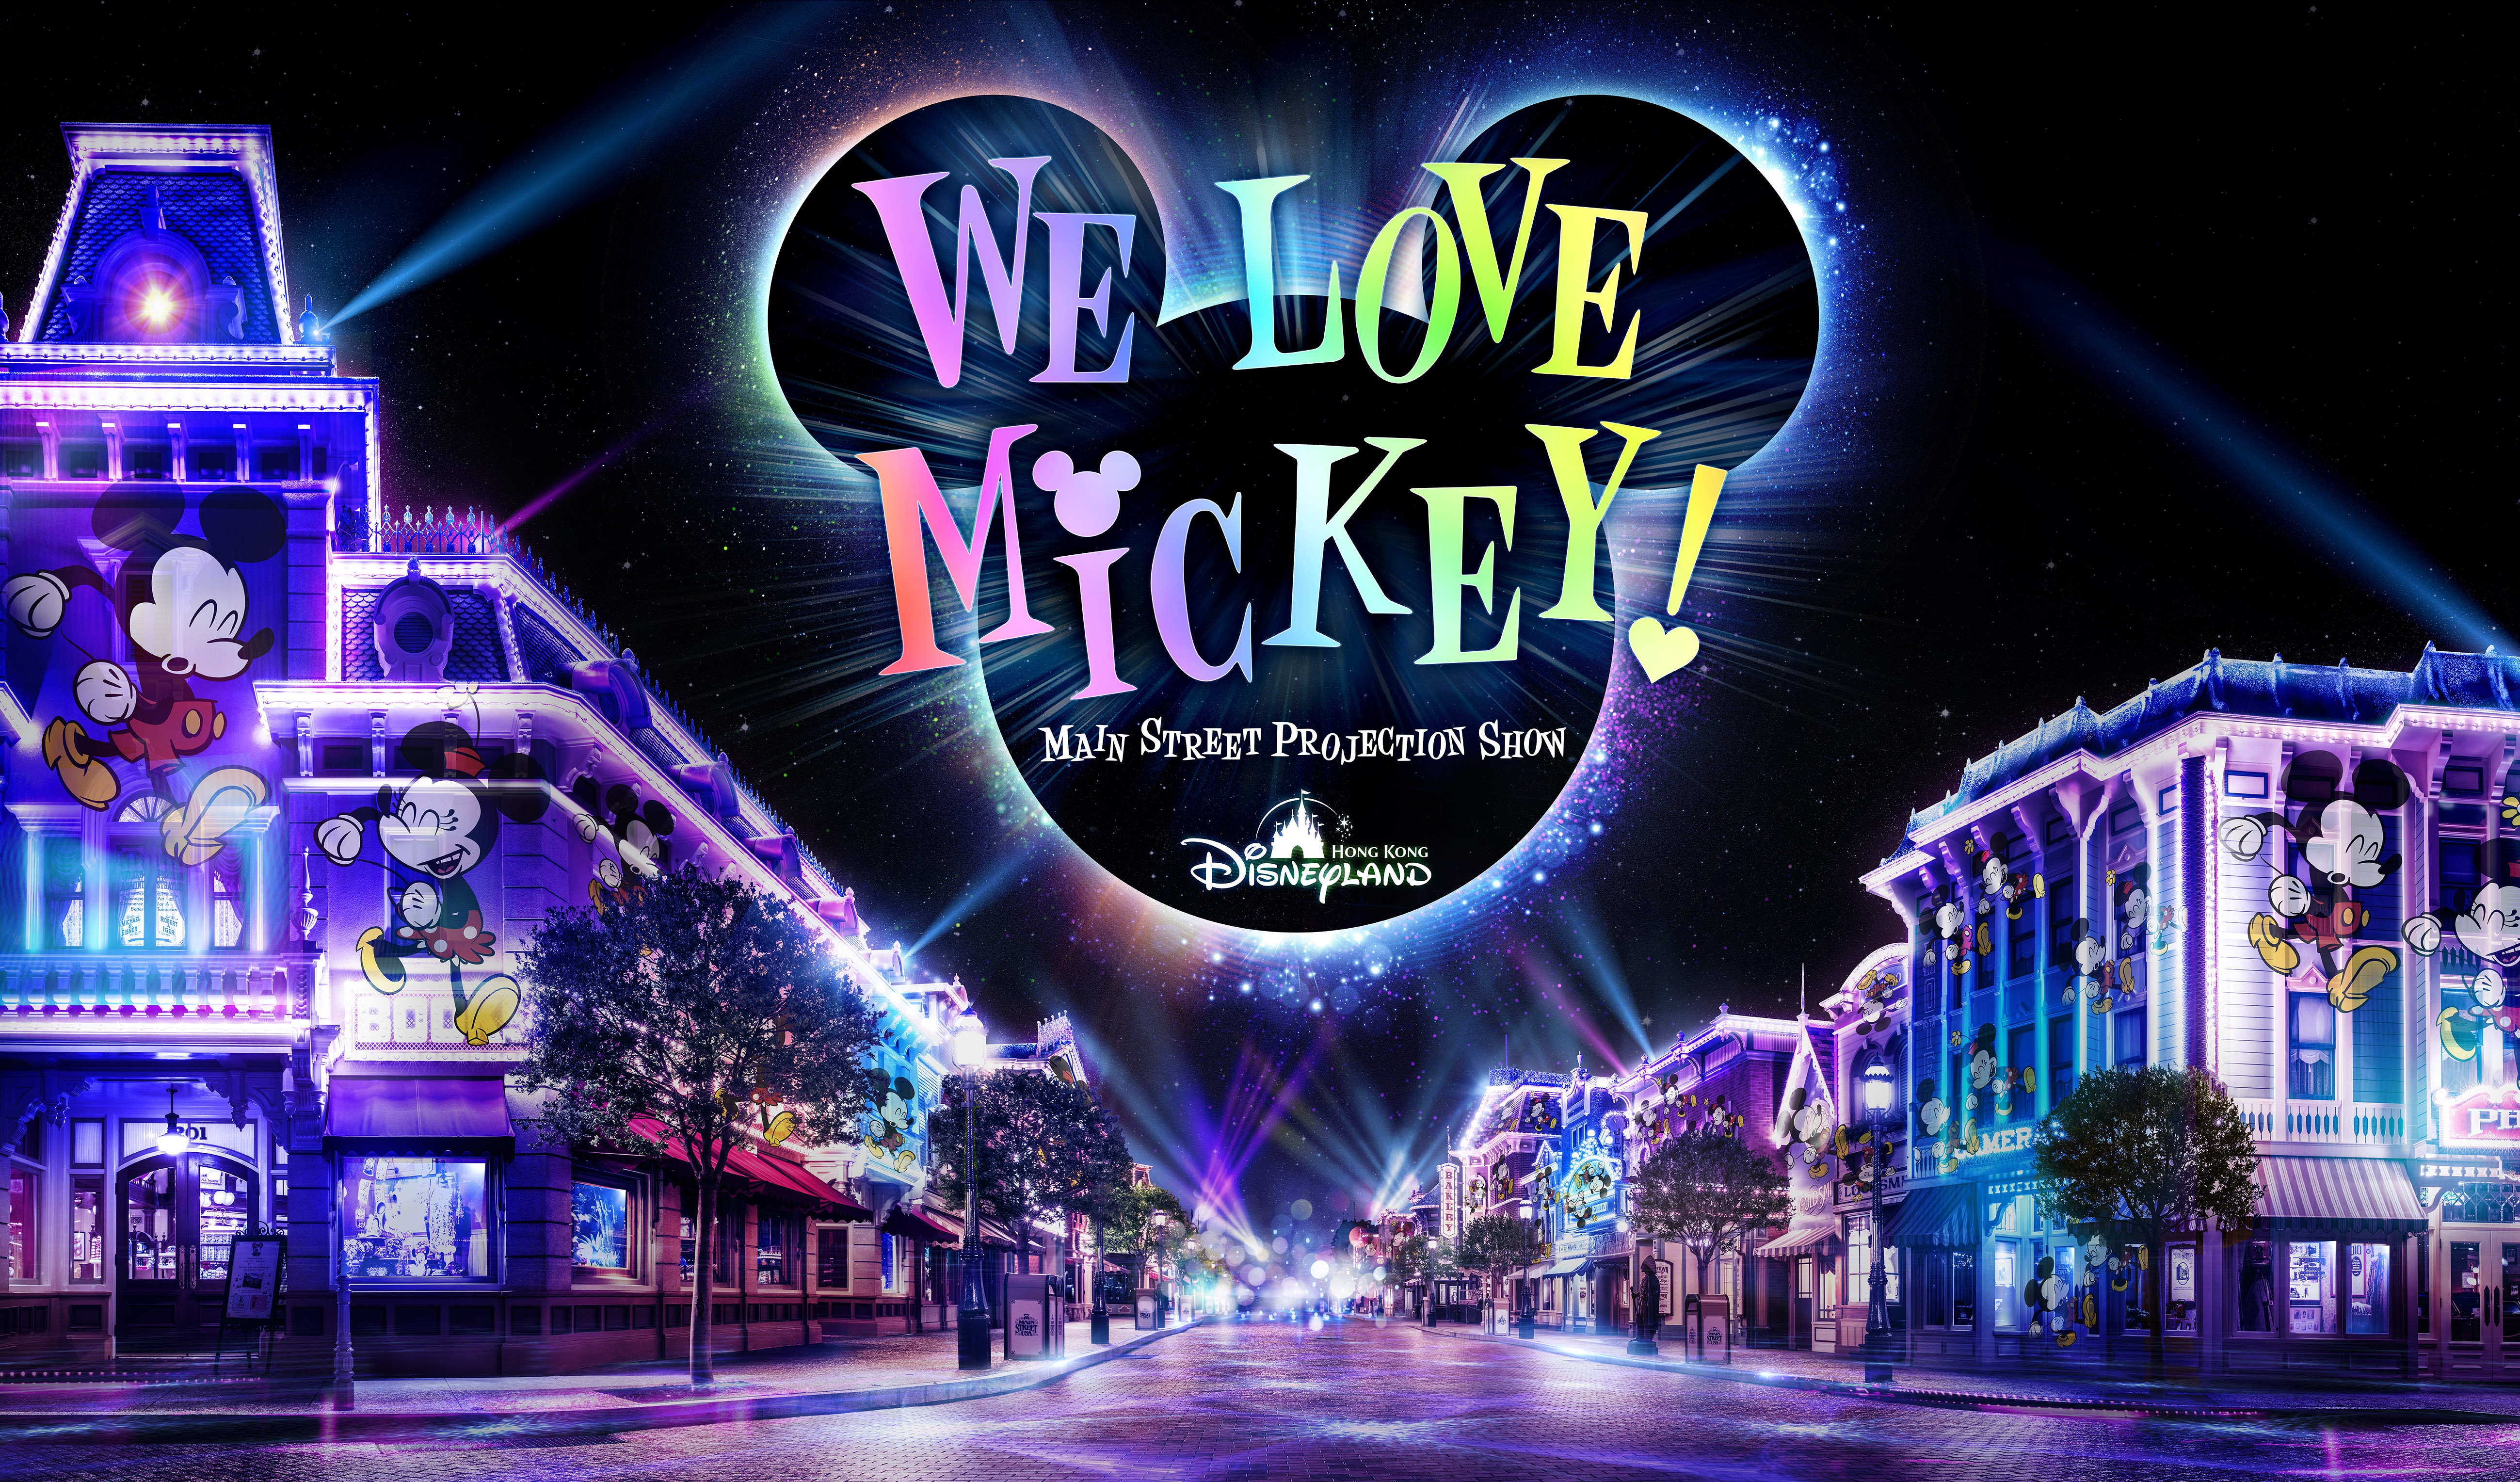 New Main Street Projection Show We Love Mickey Coming